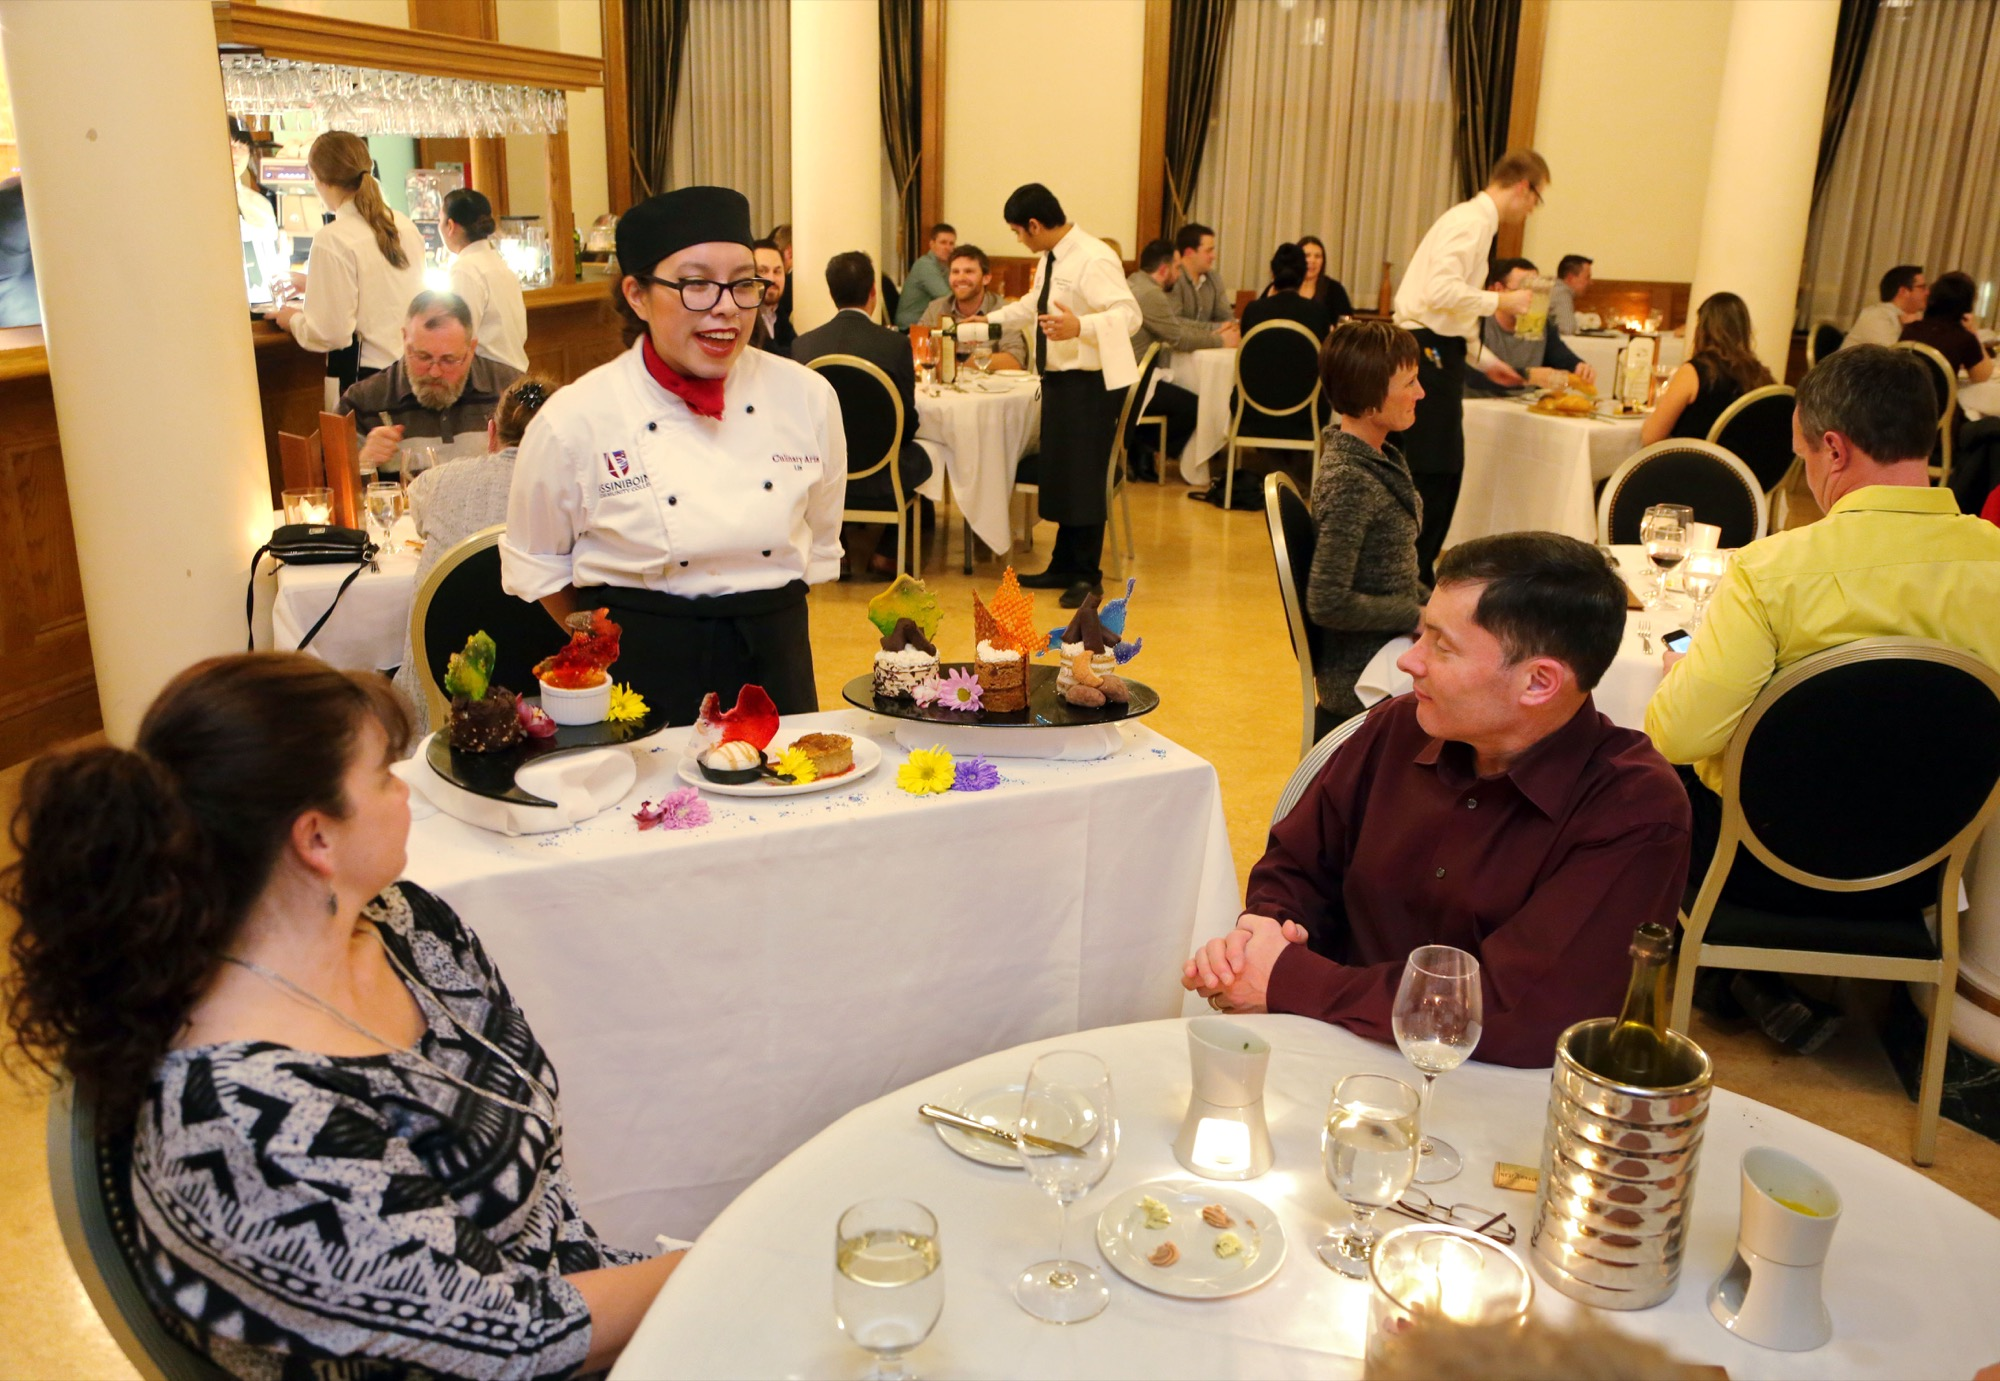 Culinary arts students with Assiniboine Community College stage the 2015 Grey Owl dinner at the college's North Hill campus. Tickets for this year's Grey Owl have already sold out.